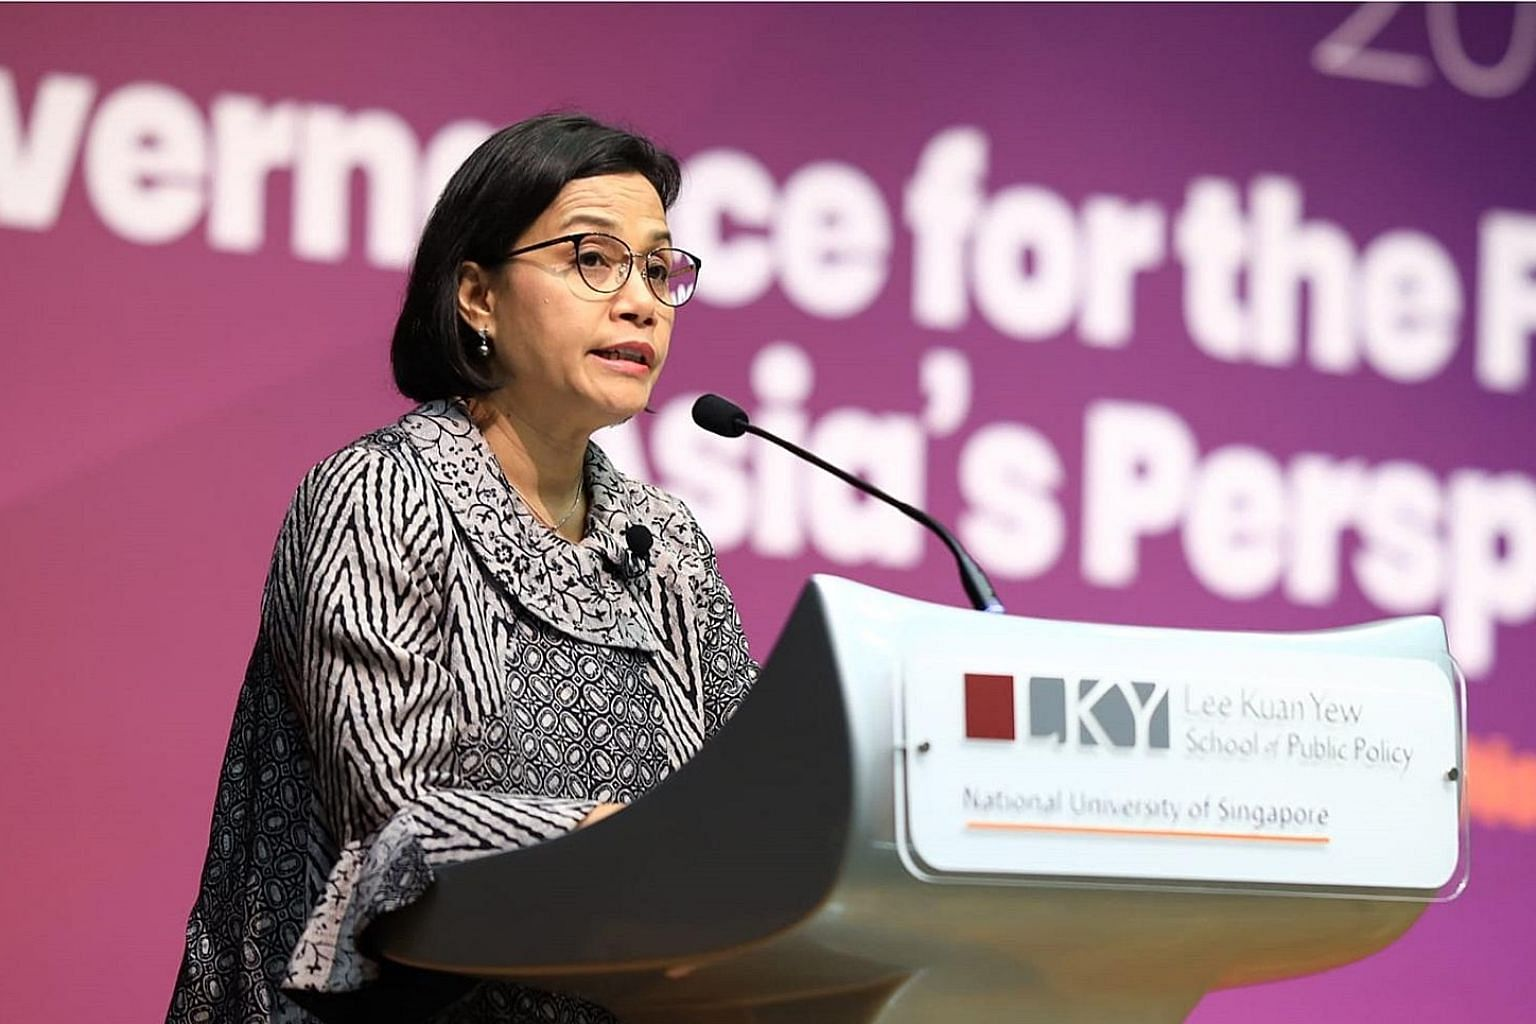 Indonesian Finance Minister Sri Mulyani Indrawati also cited instant access to data as a challenge for leaders.